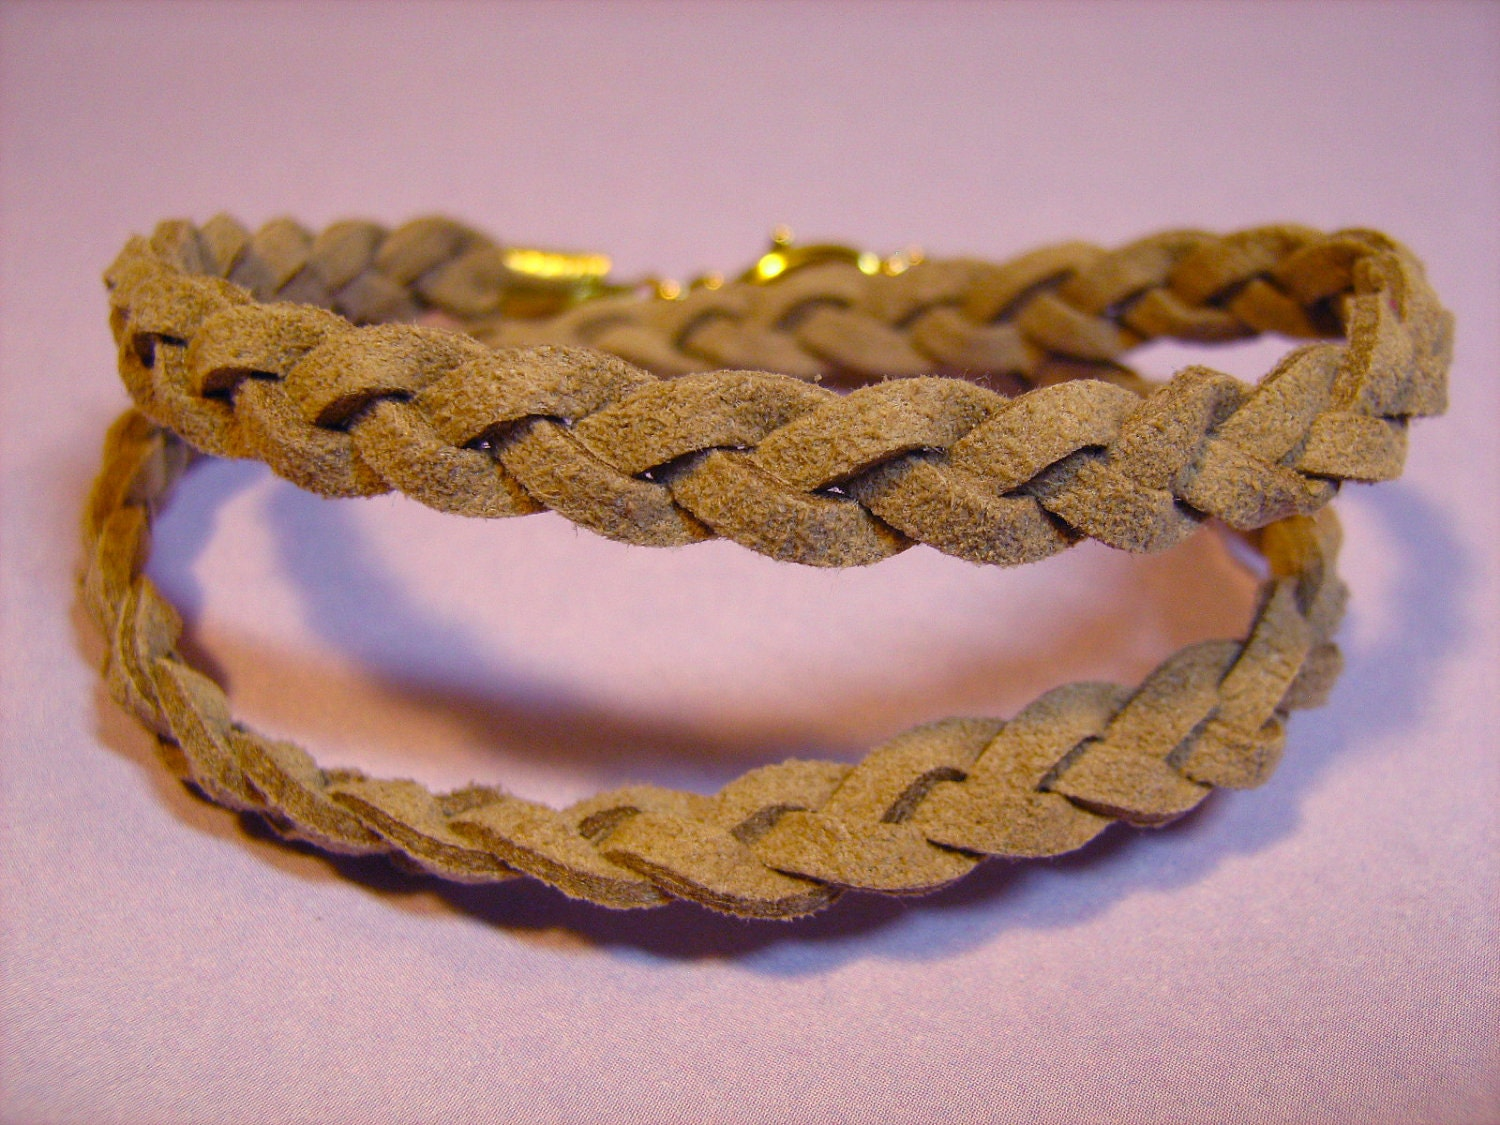 Bracelet: Double-Wrap Tan Braided Suede Cord with Goldtone Findings, for Men or Women